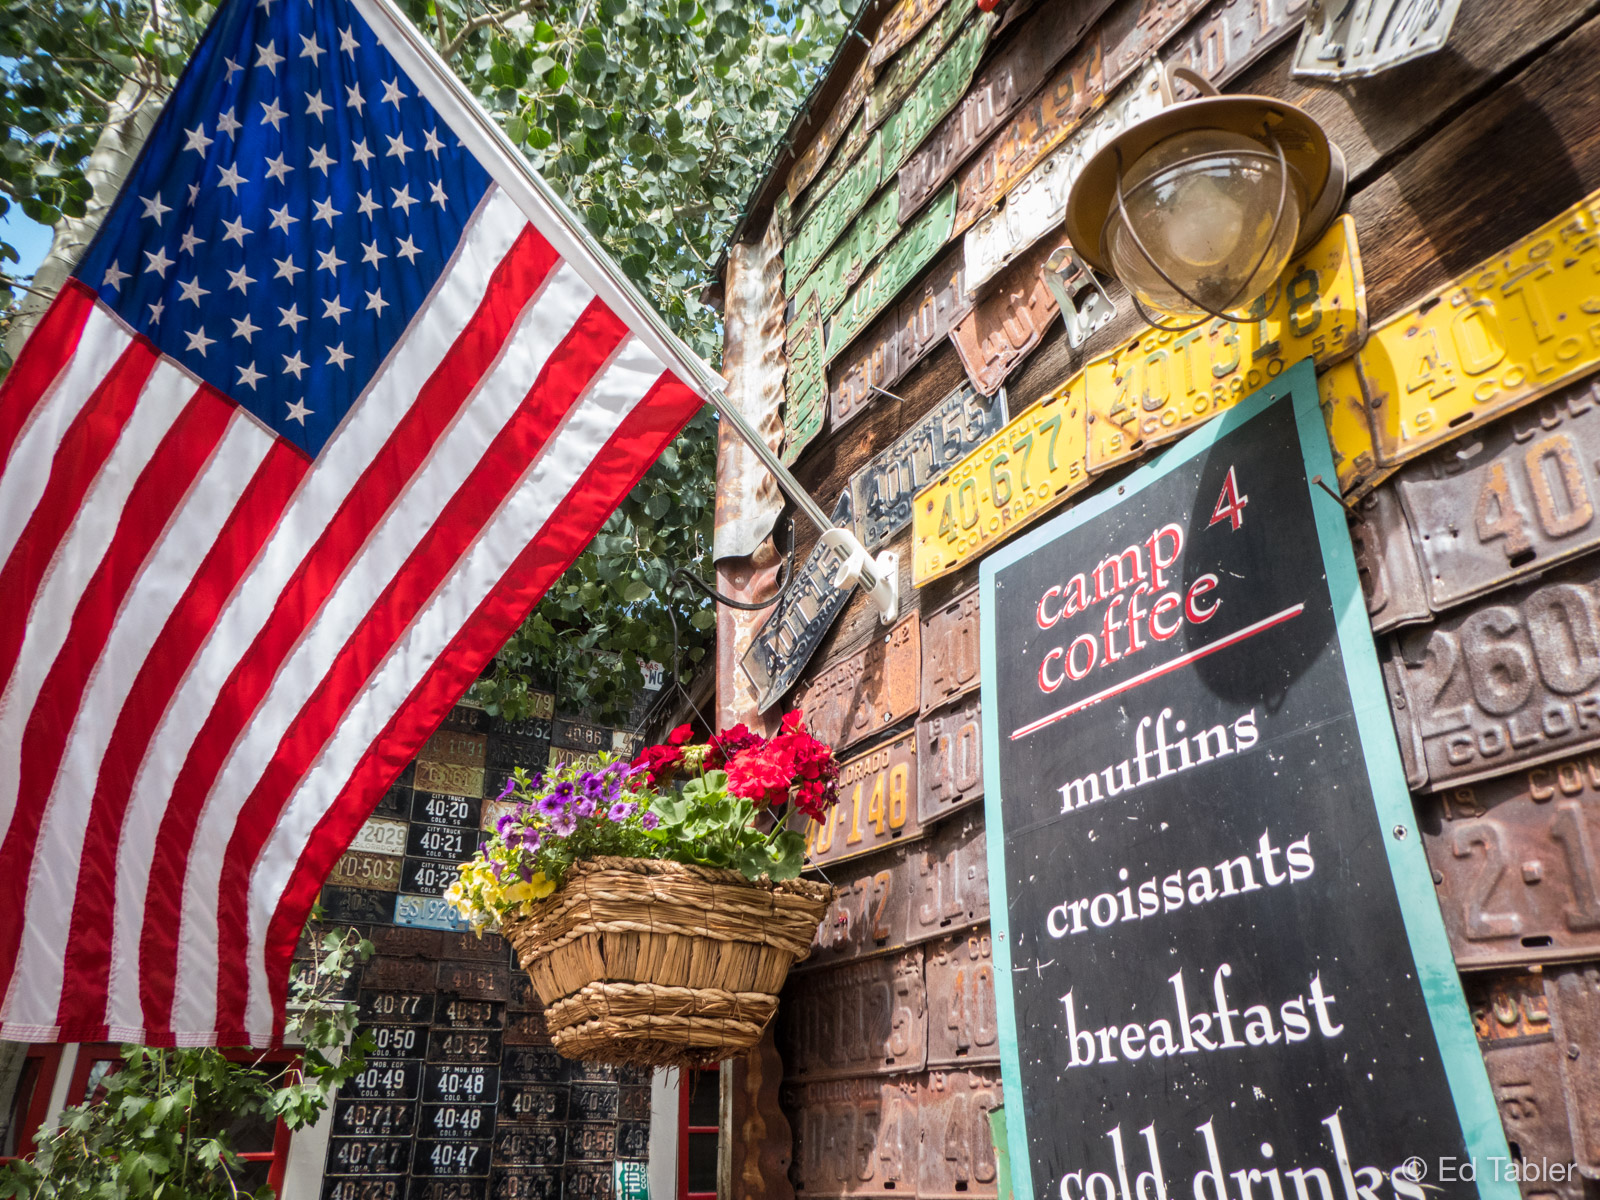 License Plate House,Camp 4 Coffee,Crested Butte,Colorado, photo